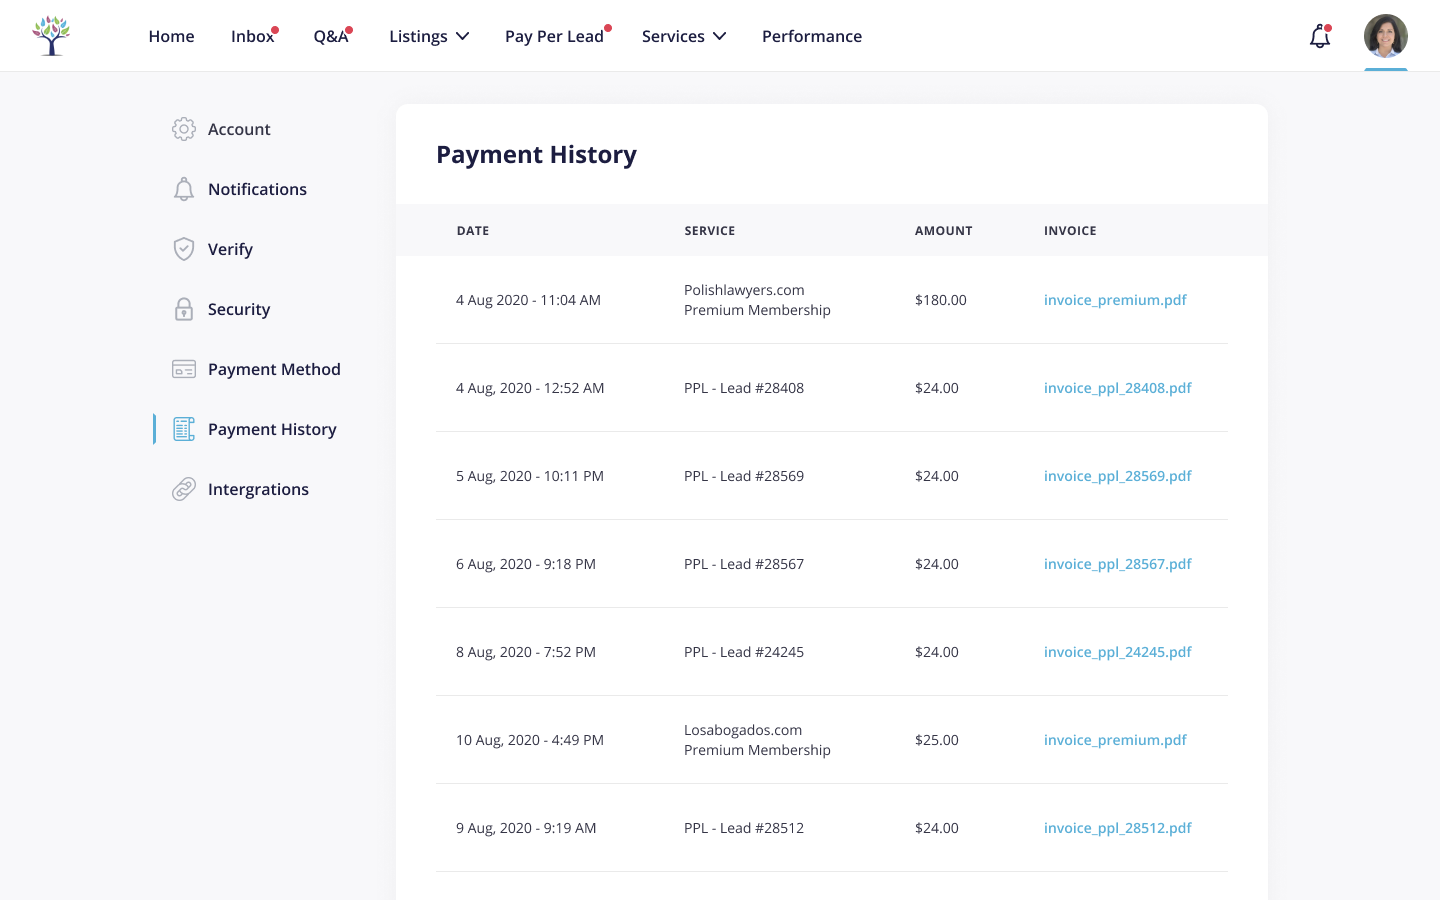 Dashboard - Payment History